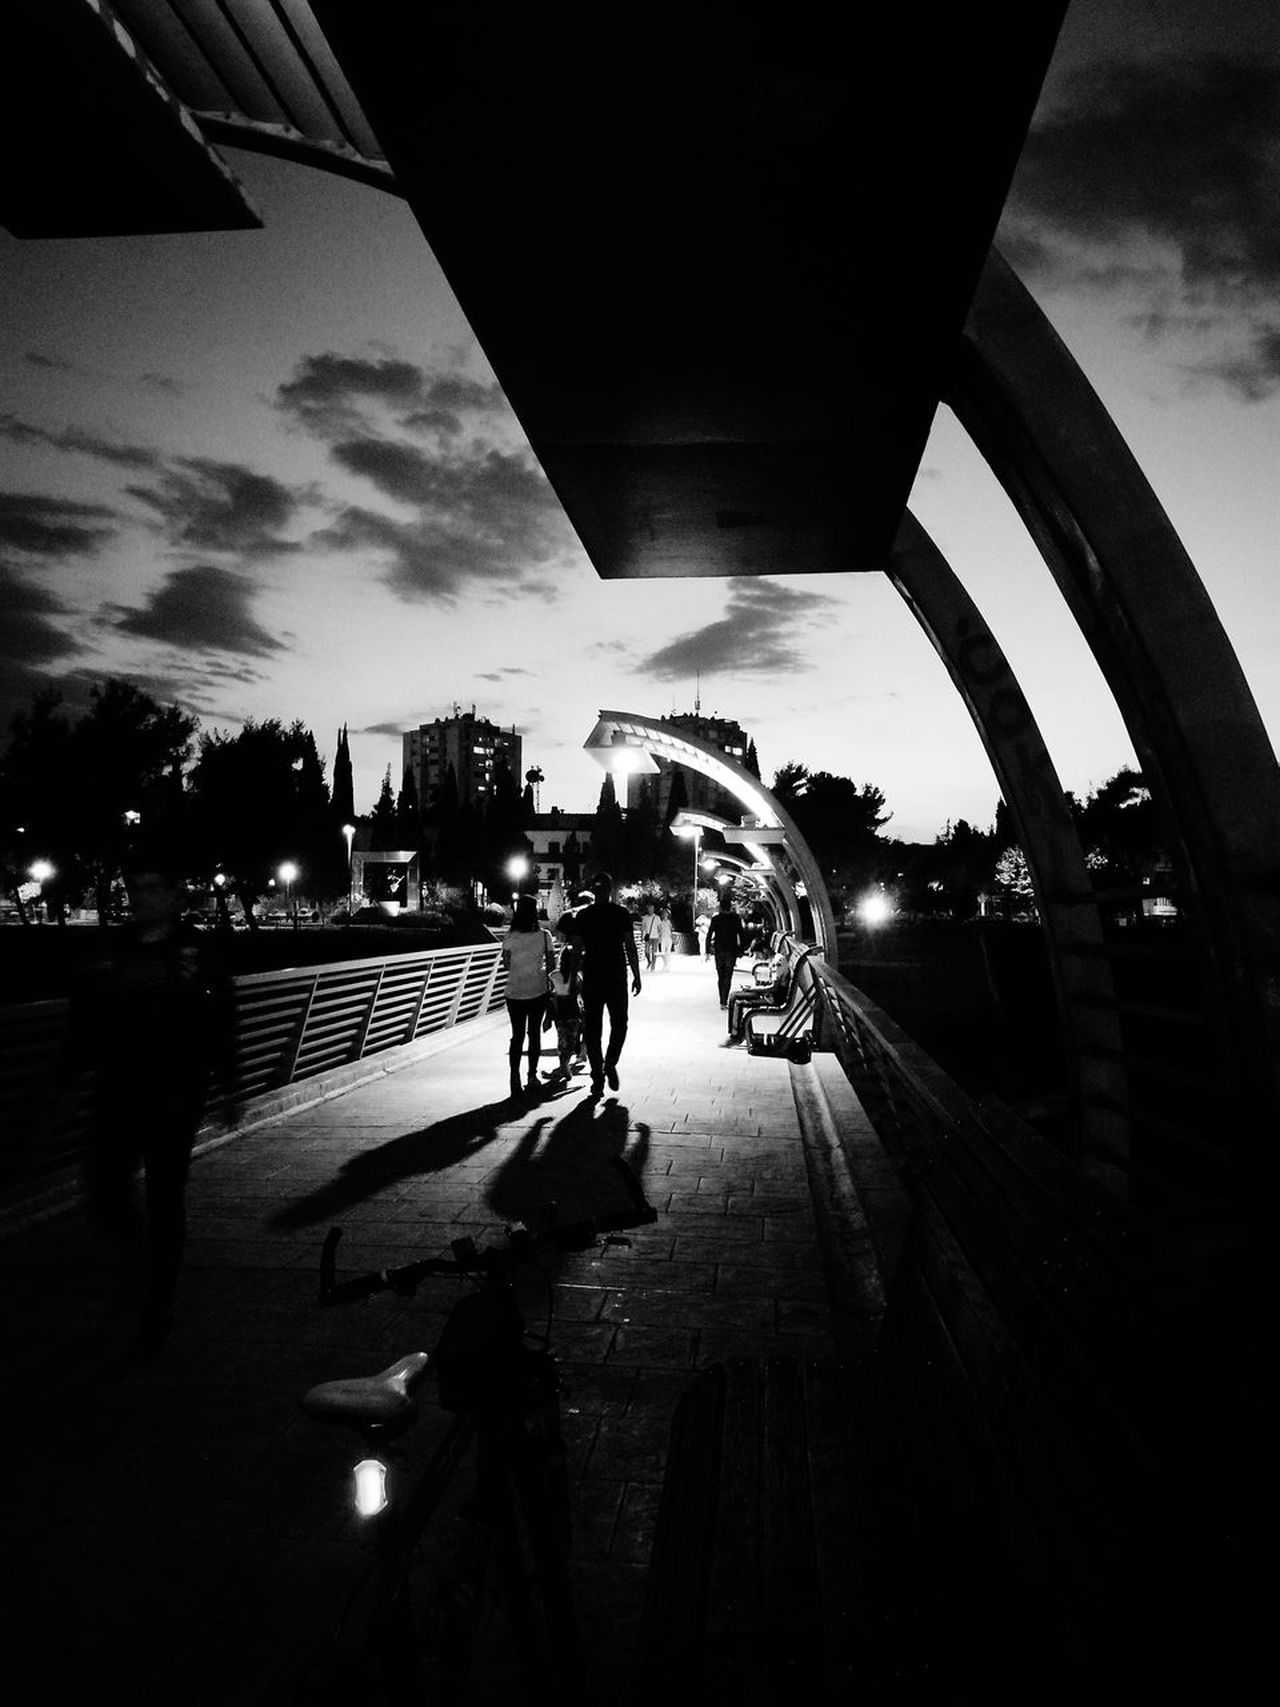 Reflection Sky Cloud - Sky Built Structure Indoors  Architecture Illuminated Cold Temperature City People Ice Hockey Water Hockey Ice Rink Day Bike Low Angle View Sunset Podgorica, Montenegro Montenegro Podgorica Cityscape Landscape Nightshot Cityexplorer The Street Photographer - 2017 EyeEm Awards